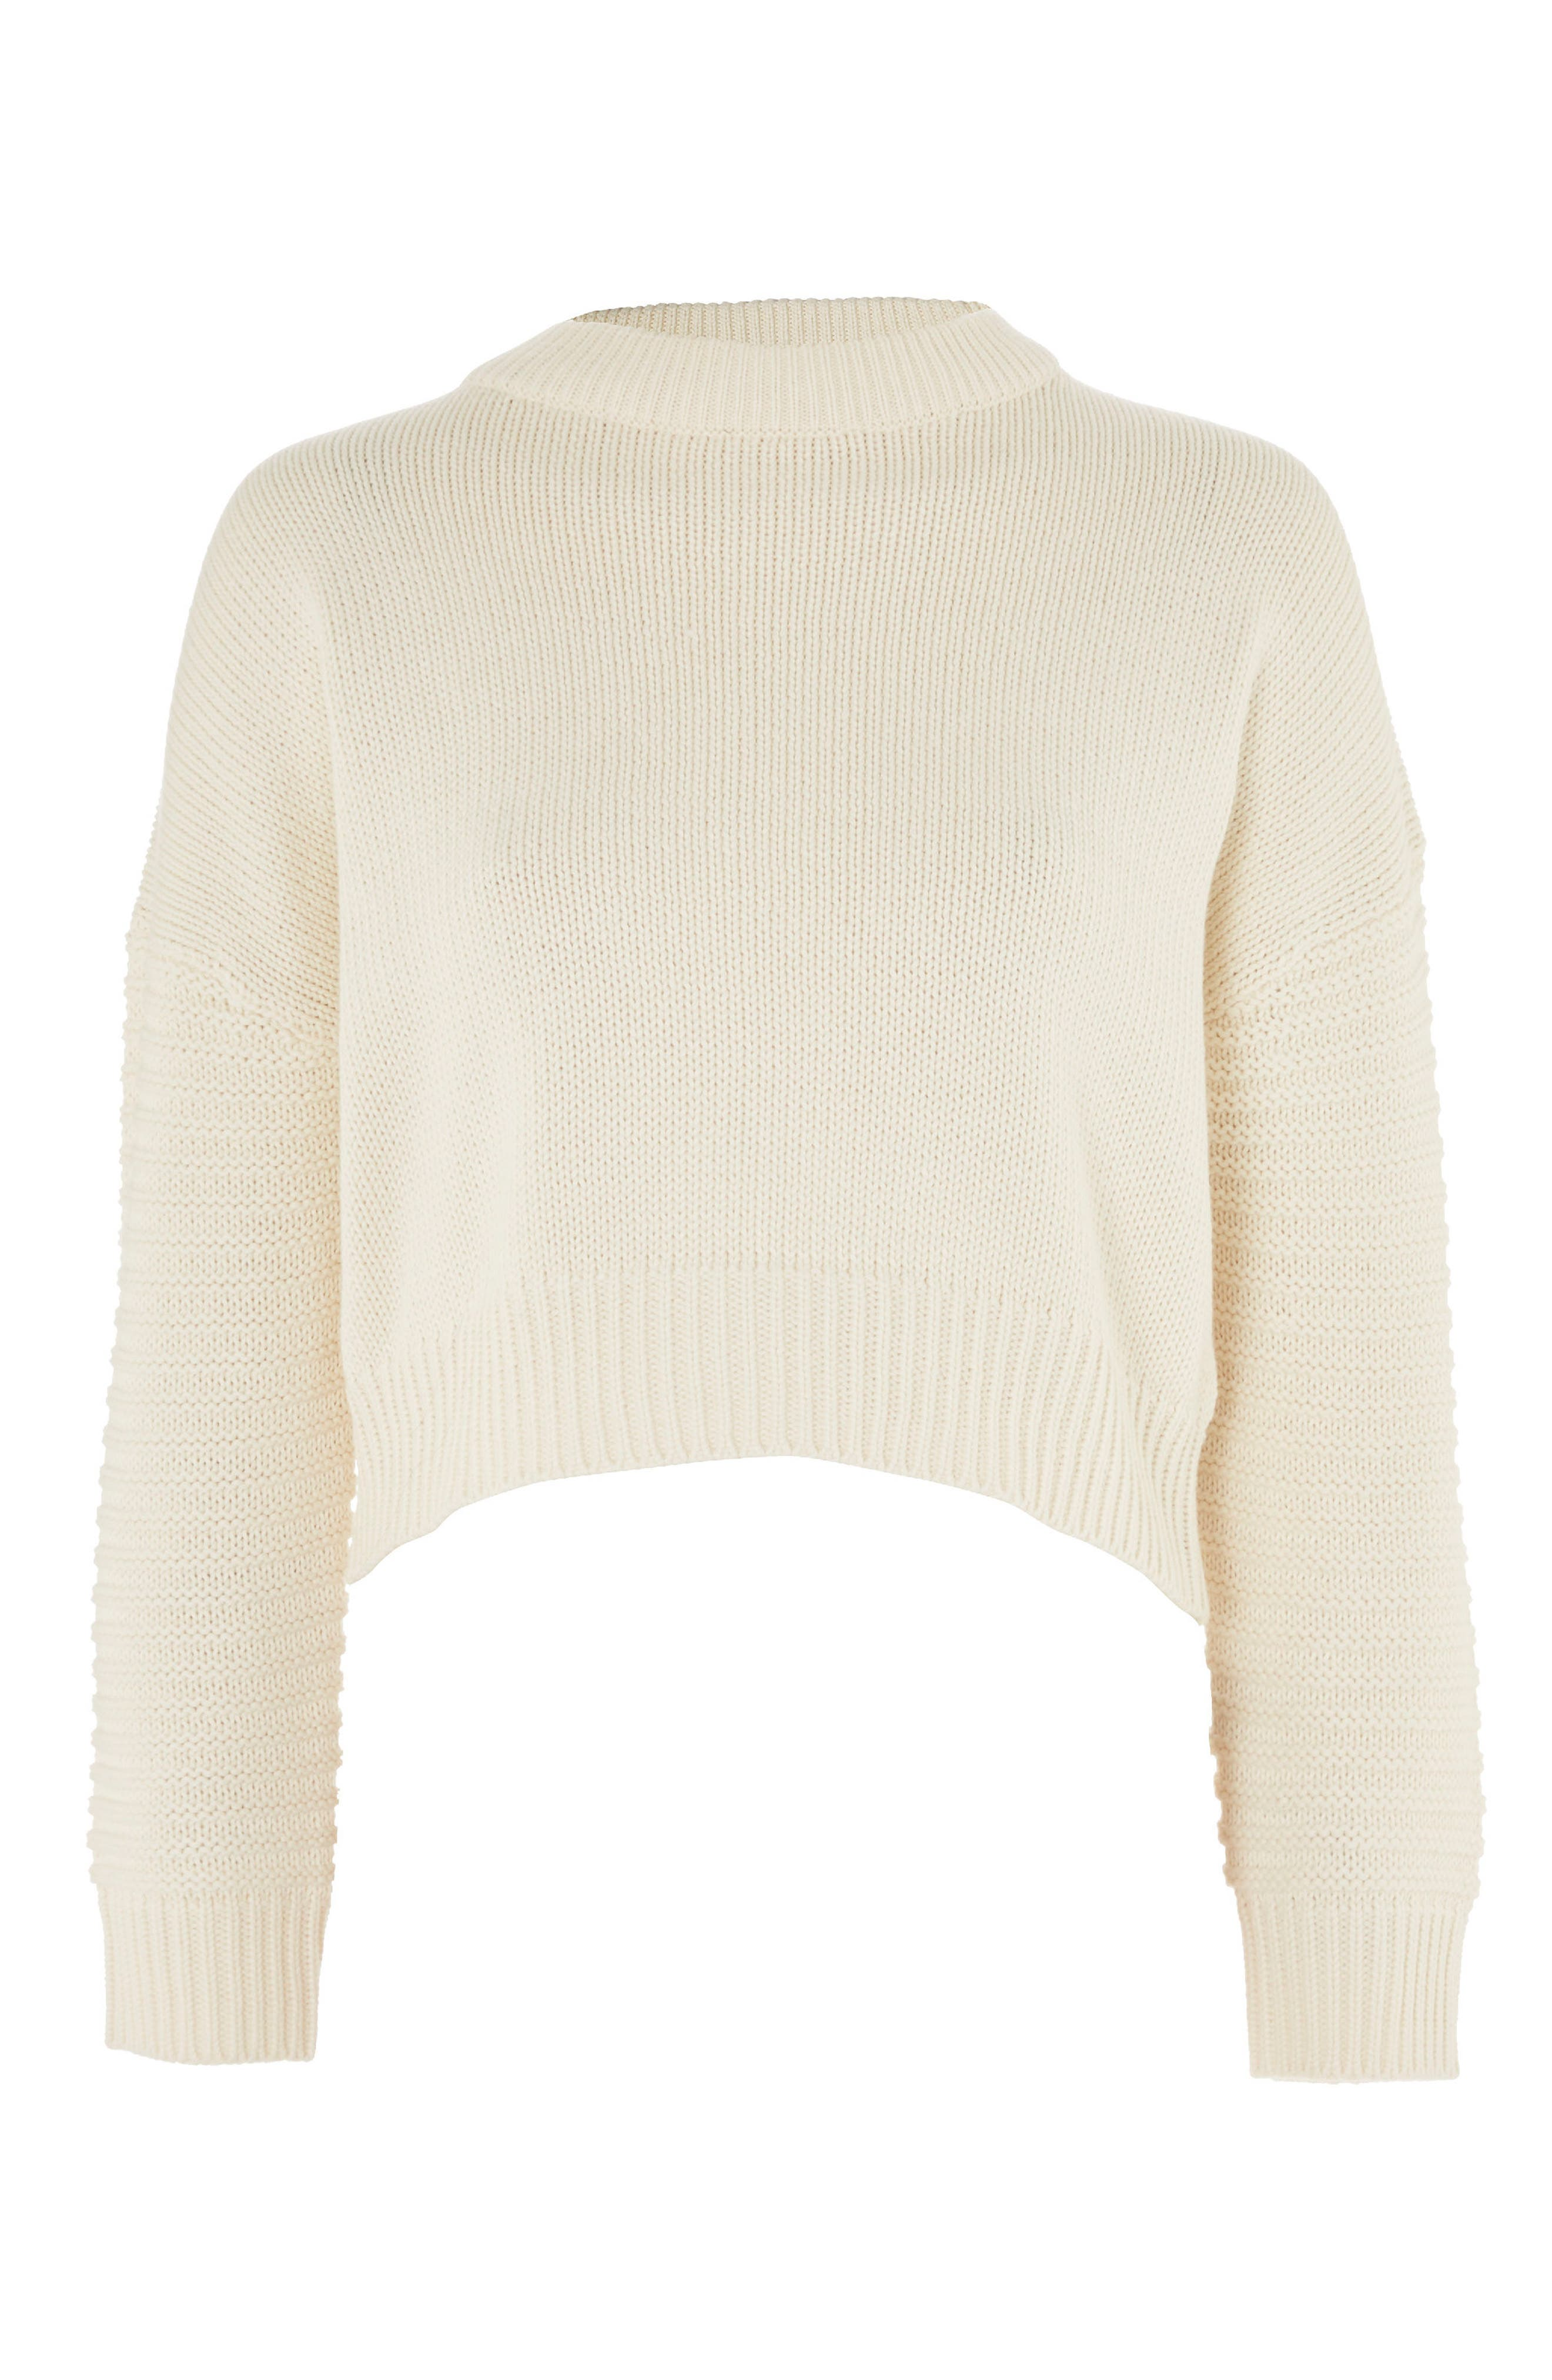 Stitch Sleeve Sweater,                             Alternate thumbnail 3, color,